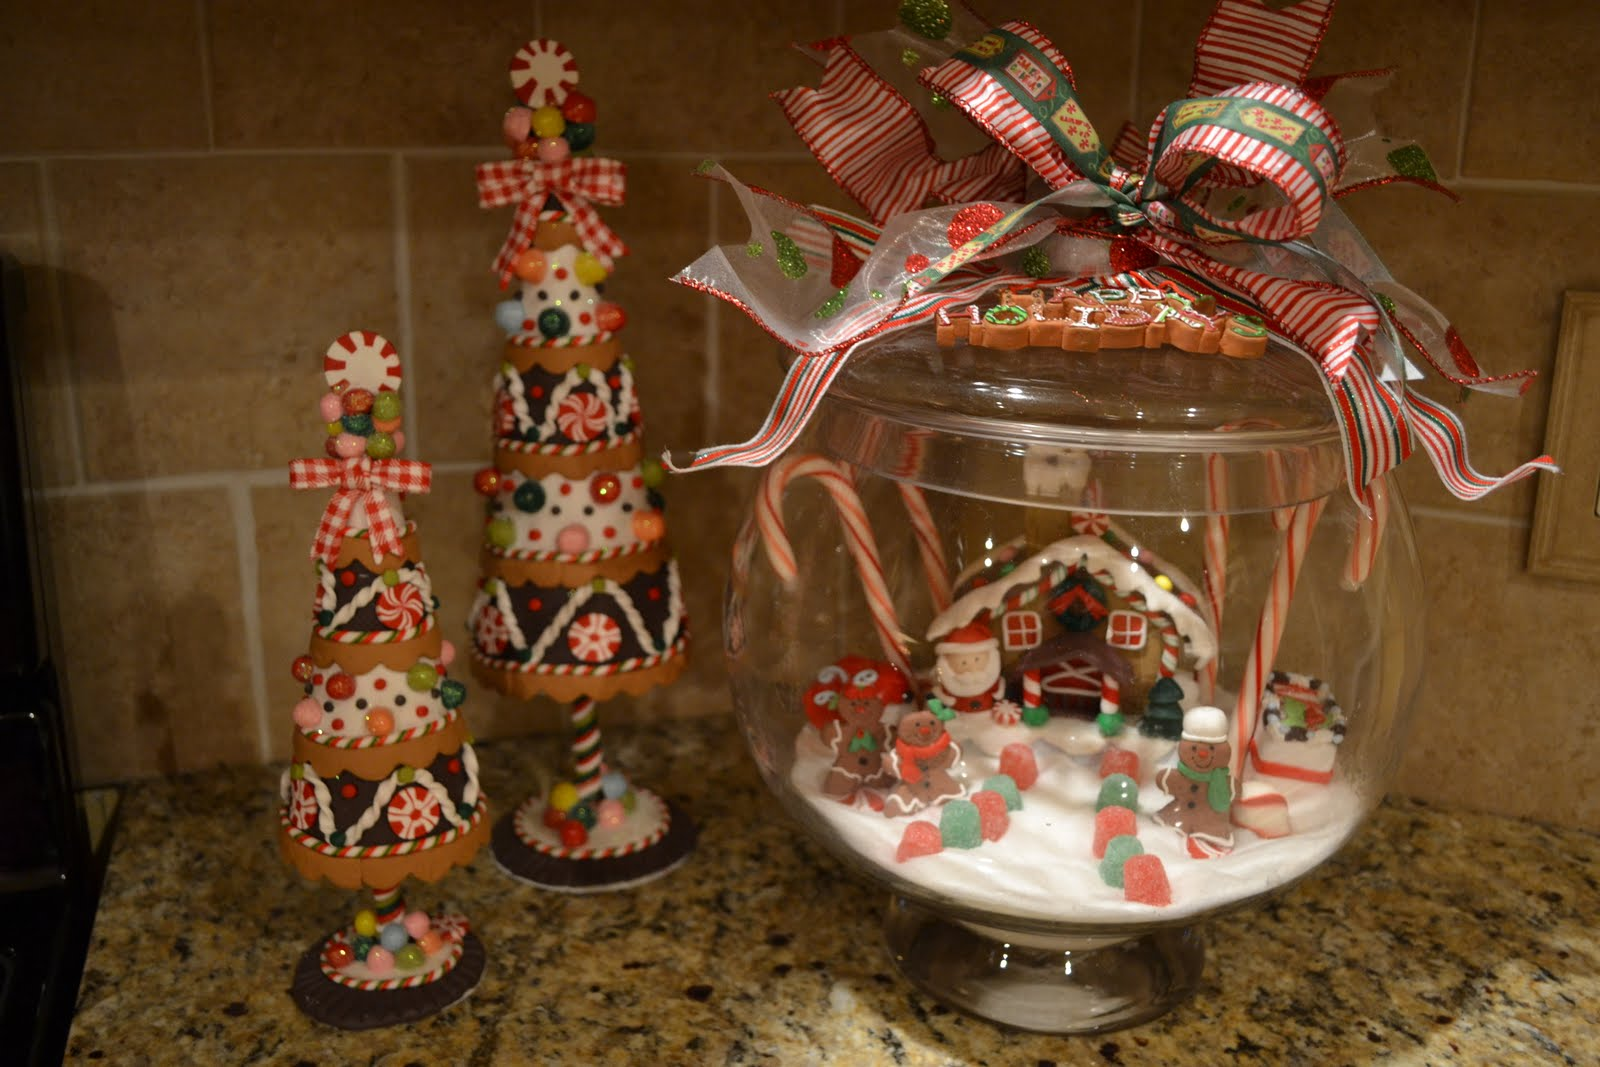 Gingerbread Decorations, Etsy Store Items and an Upcoming Giveaway!